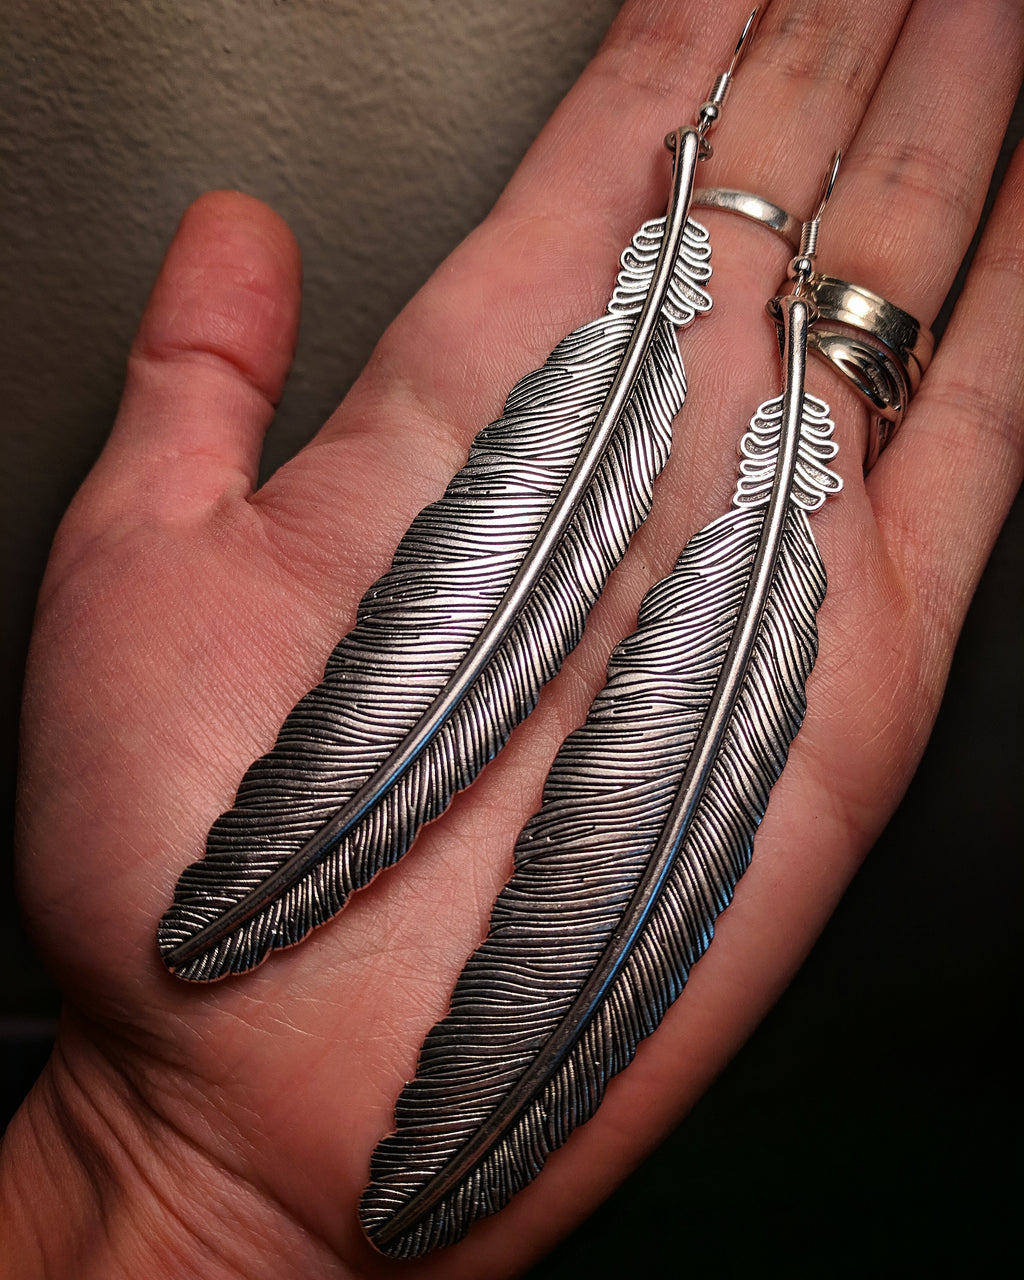 Dramatic Statement Silver Colored Large Feather Earrings With Surgical Stainless Steel Ear Hooks